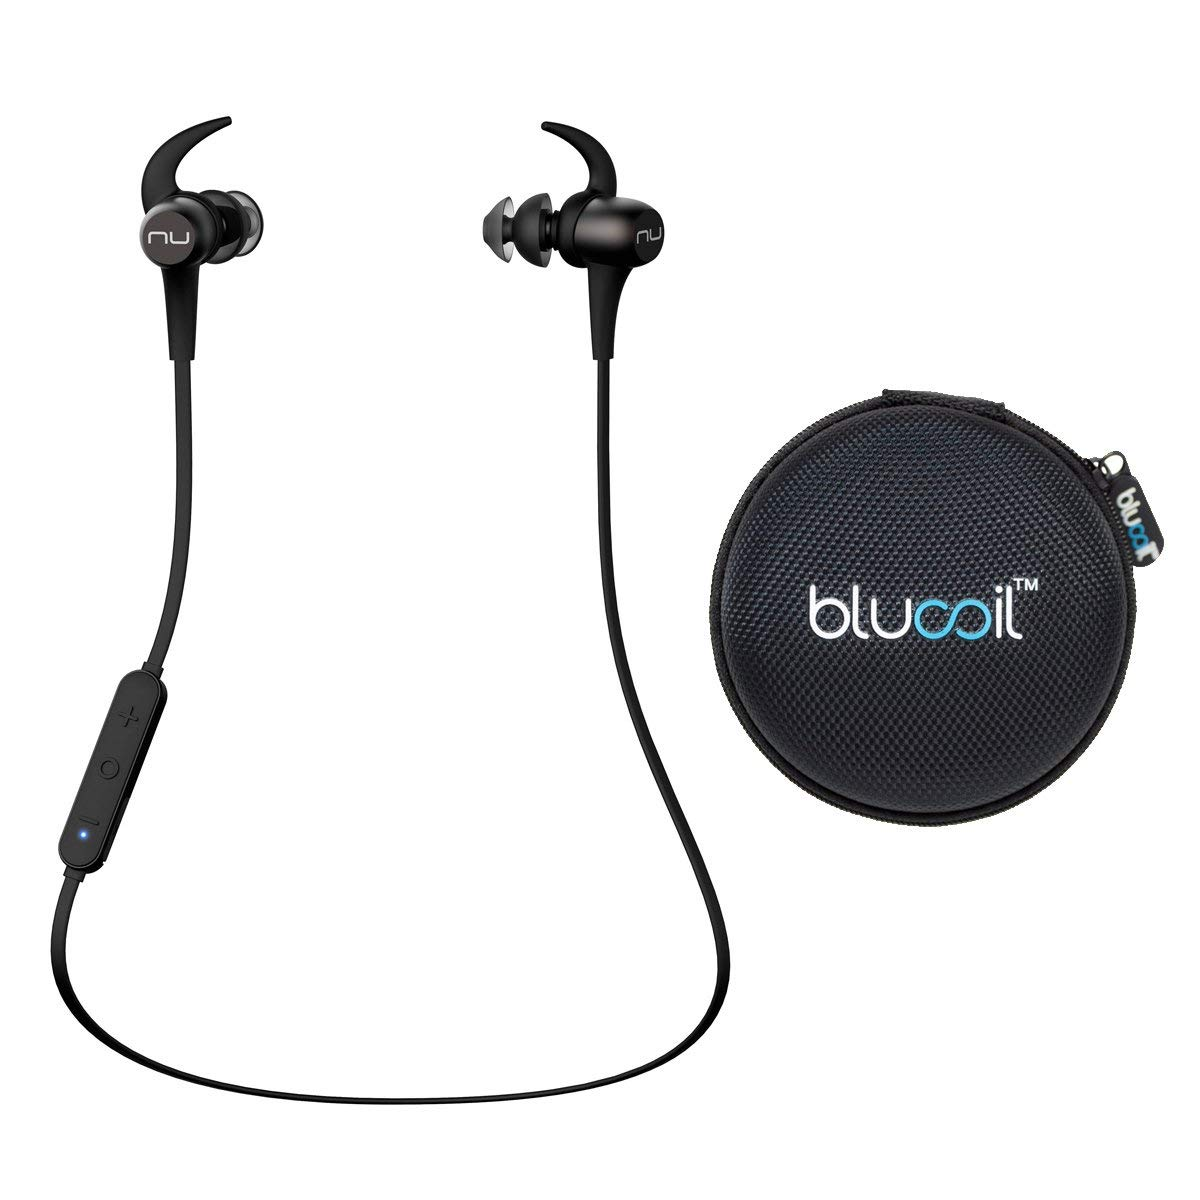 Cheap Bluetooth Aac, find Bluetooth Aac deals on line at